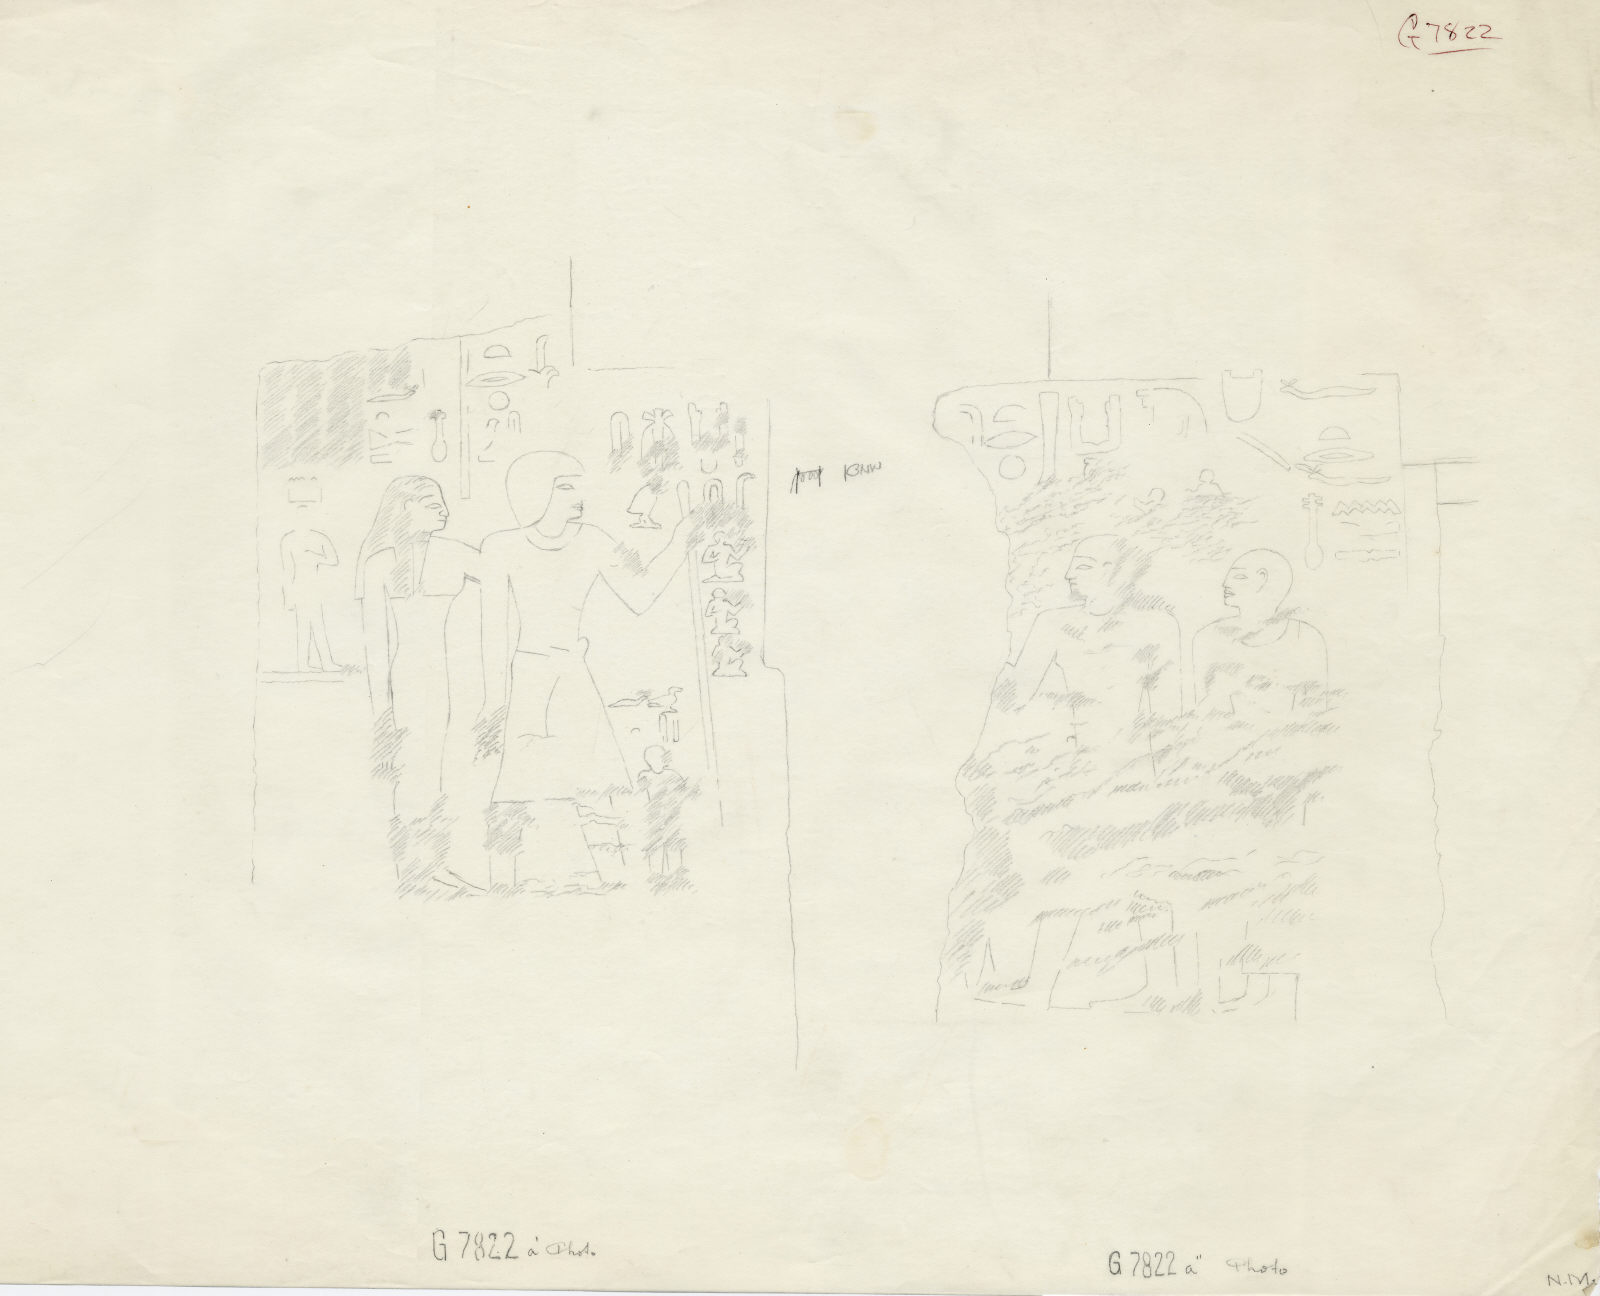 Drawings: G 7822: relief from chapel, room a, W wall